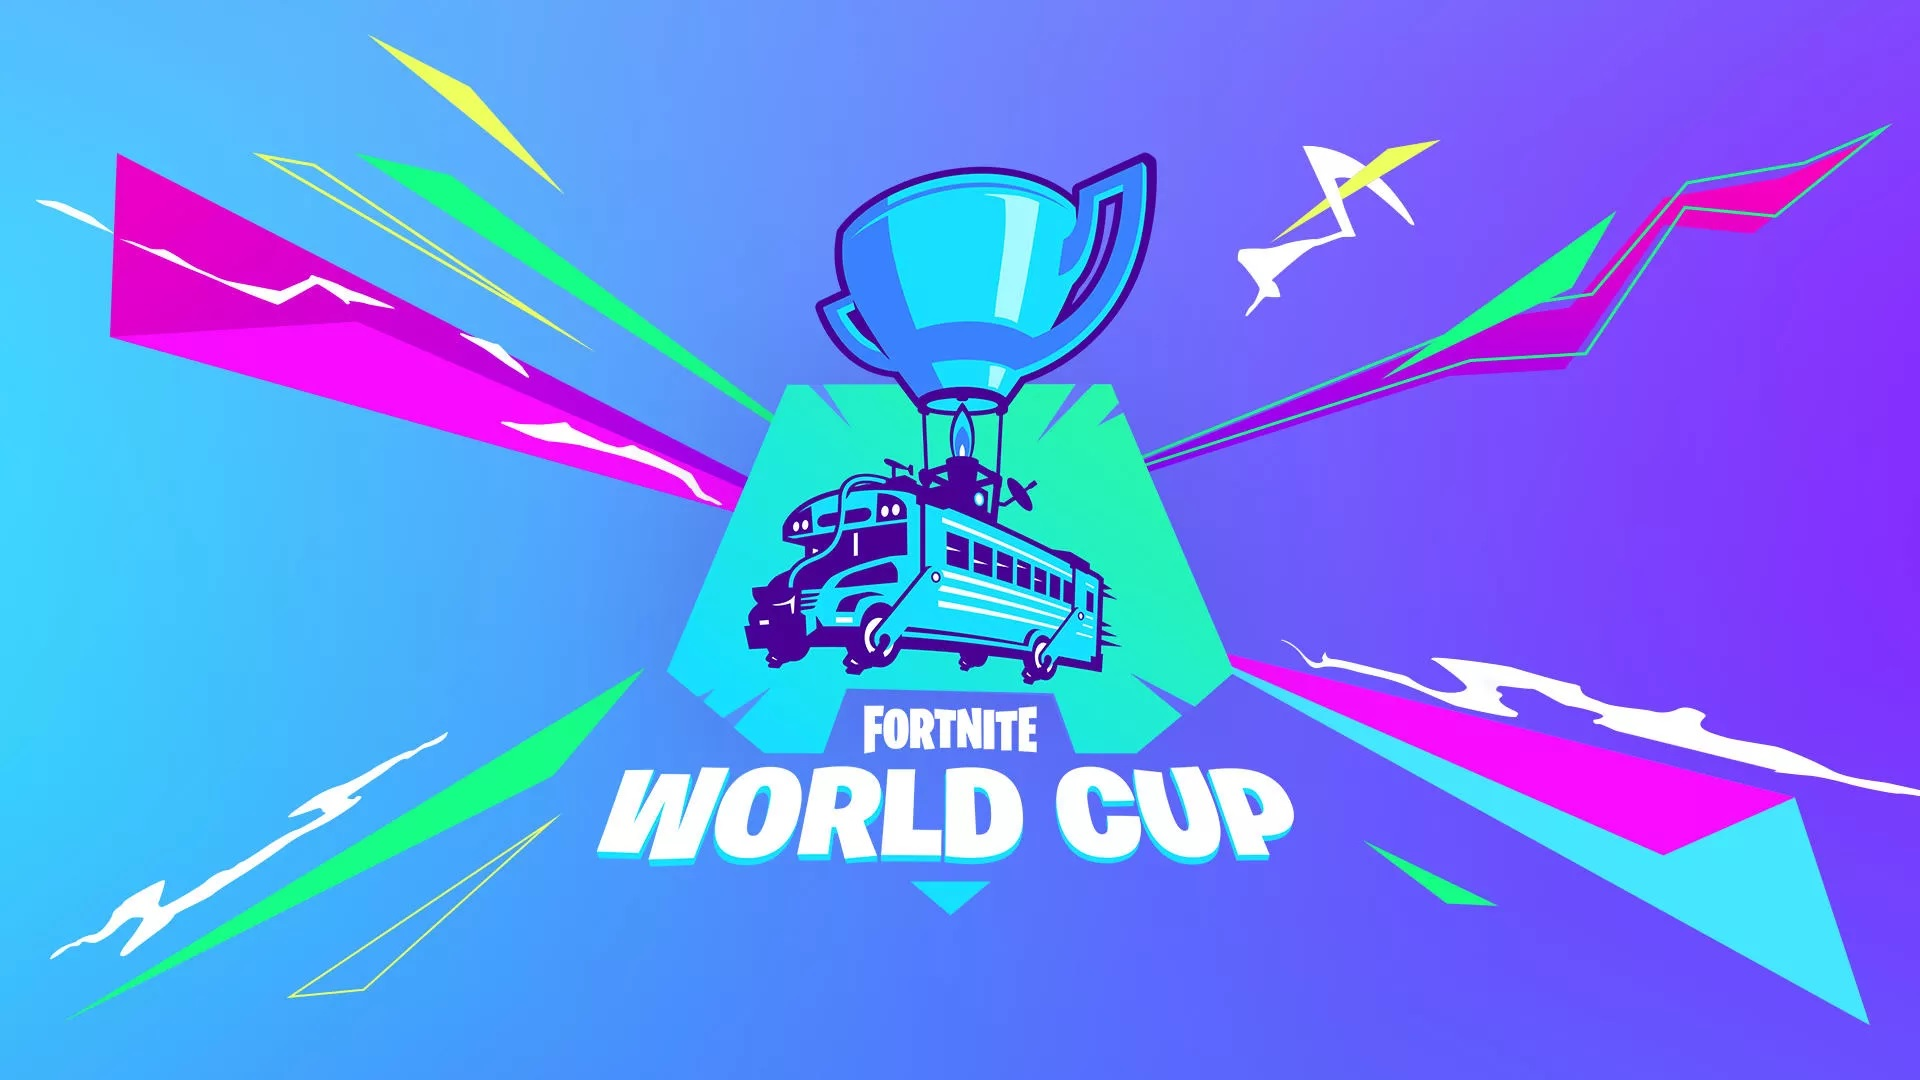 photo of Fortnite World Cup champion Bugha swatted during Twitch stream image